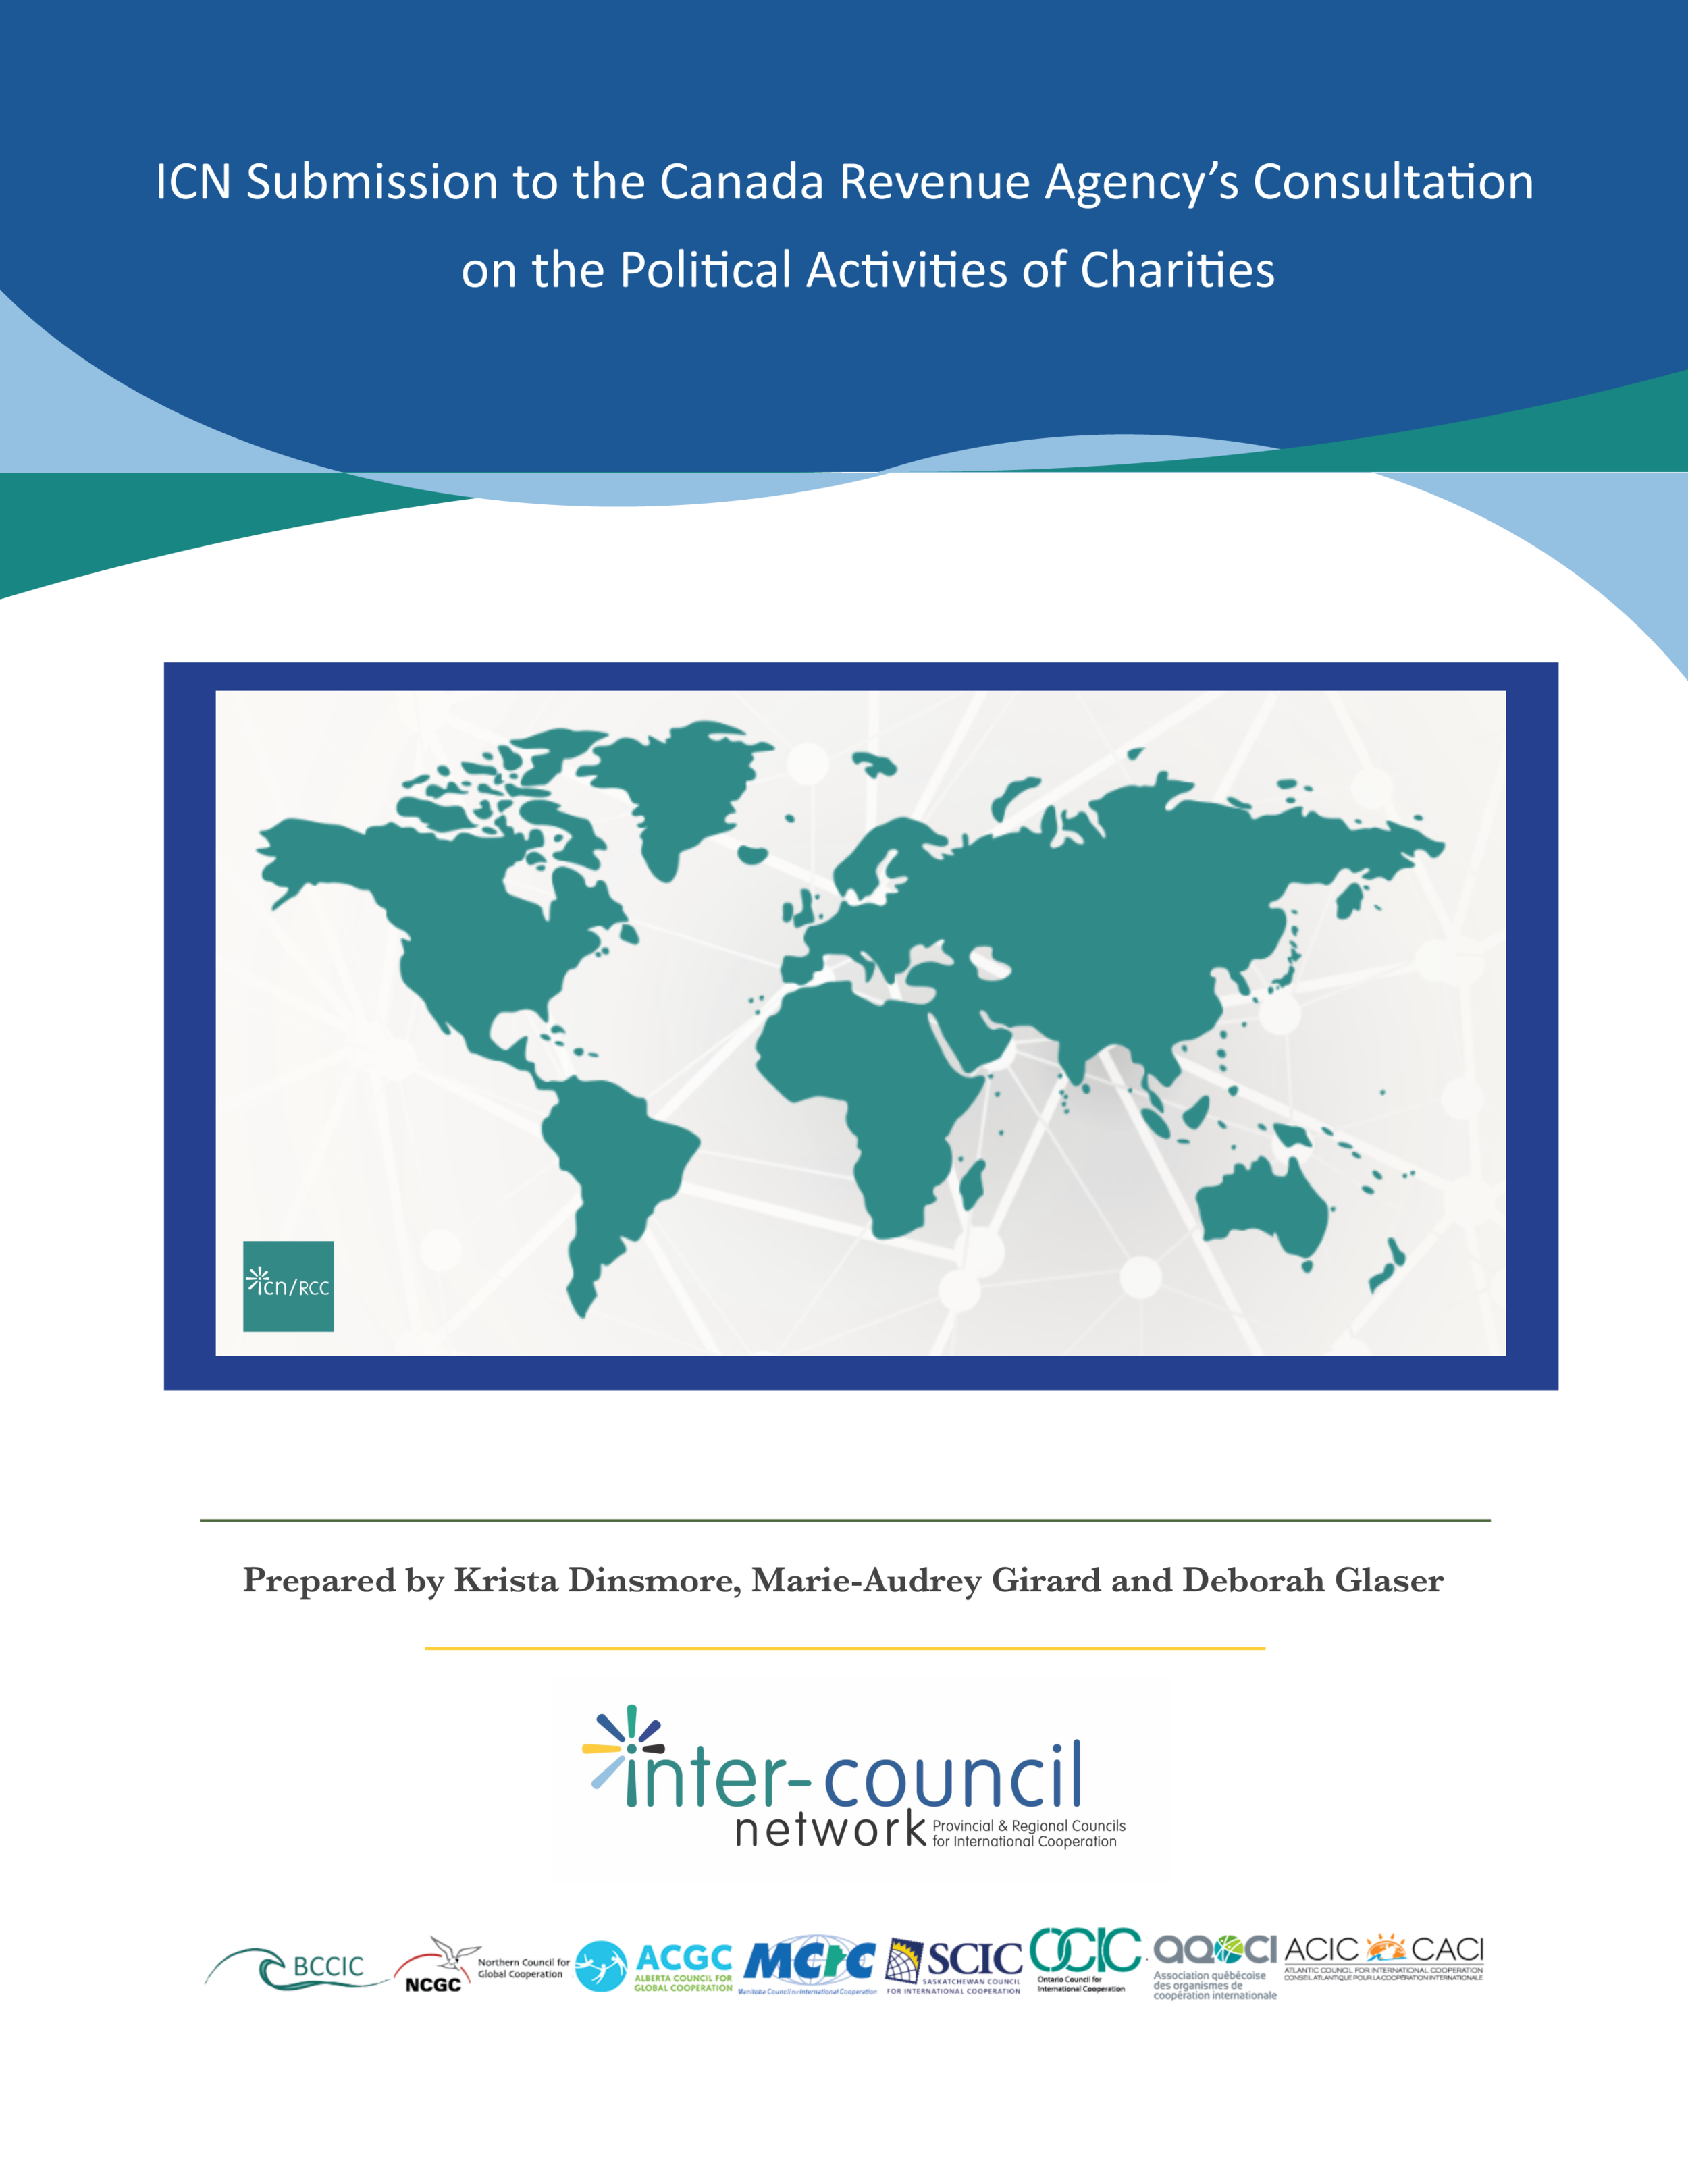 ICN Submission to the Canada Revenue Agency's Consultation on the Political Activities of Charities